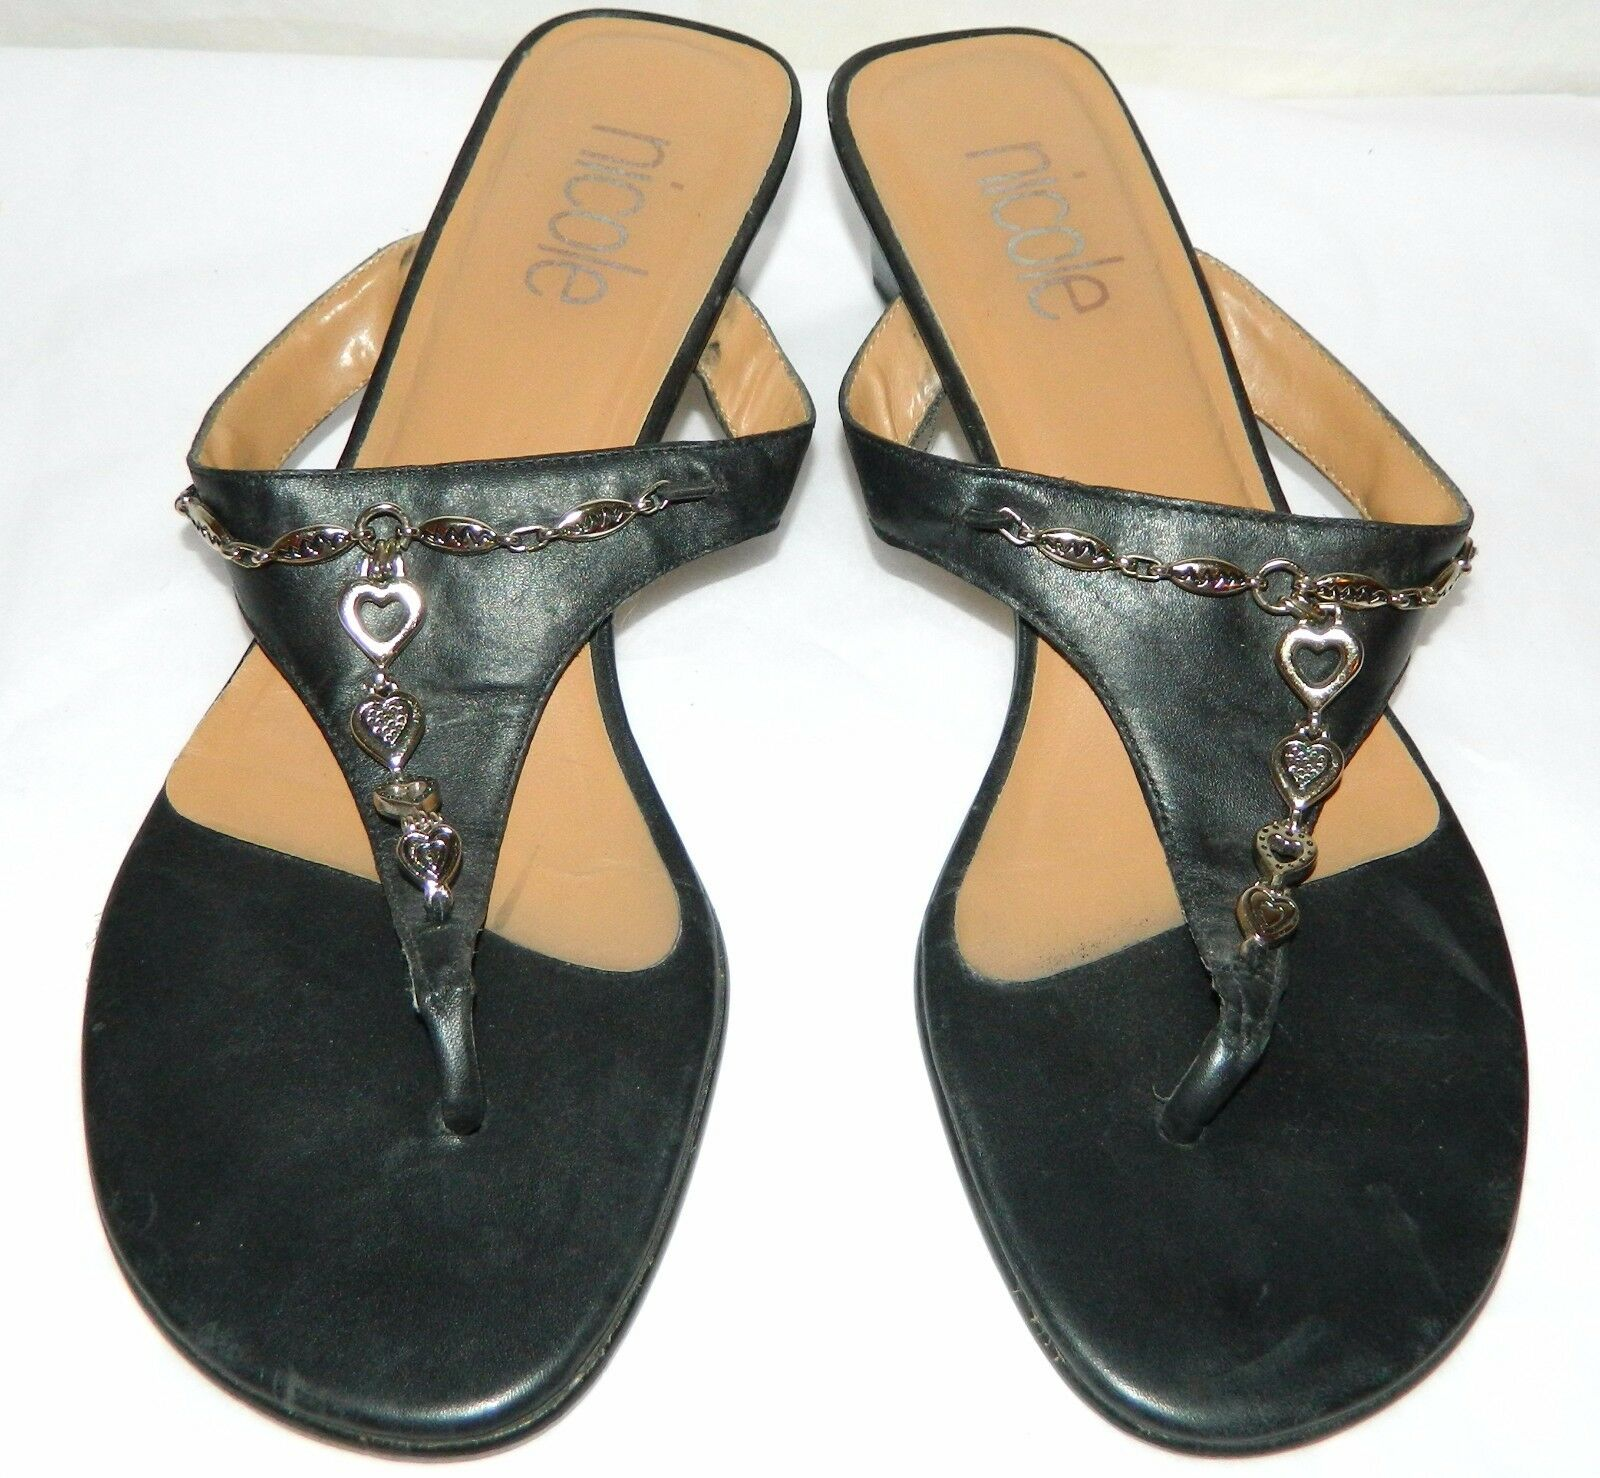 Nicole Black LEATHER Heels heart charms Flip Flop Heels LEATHER womens size 8.5 Brazil 625042